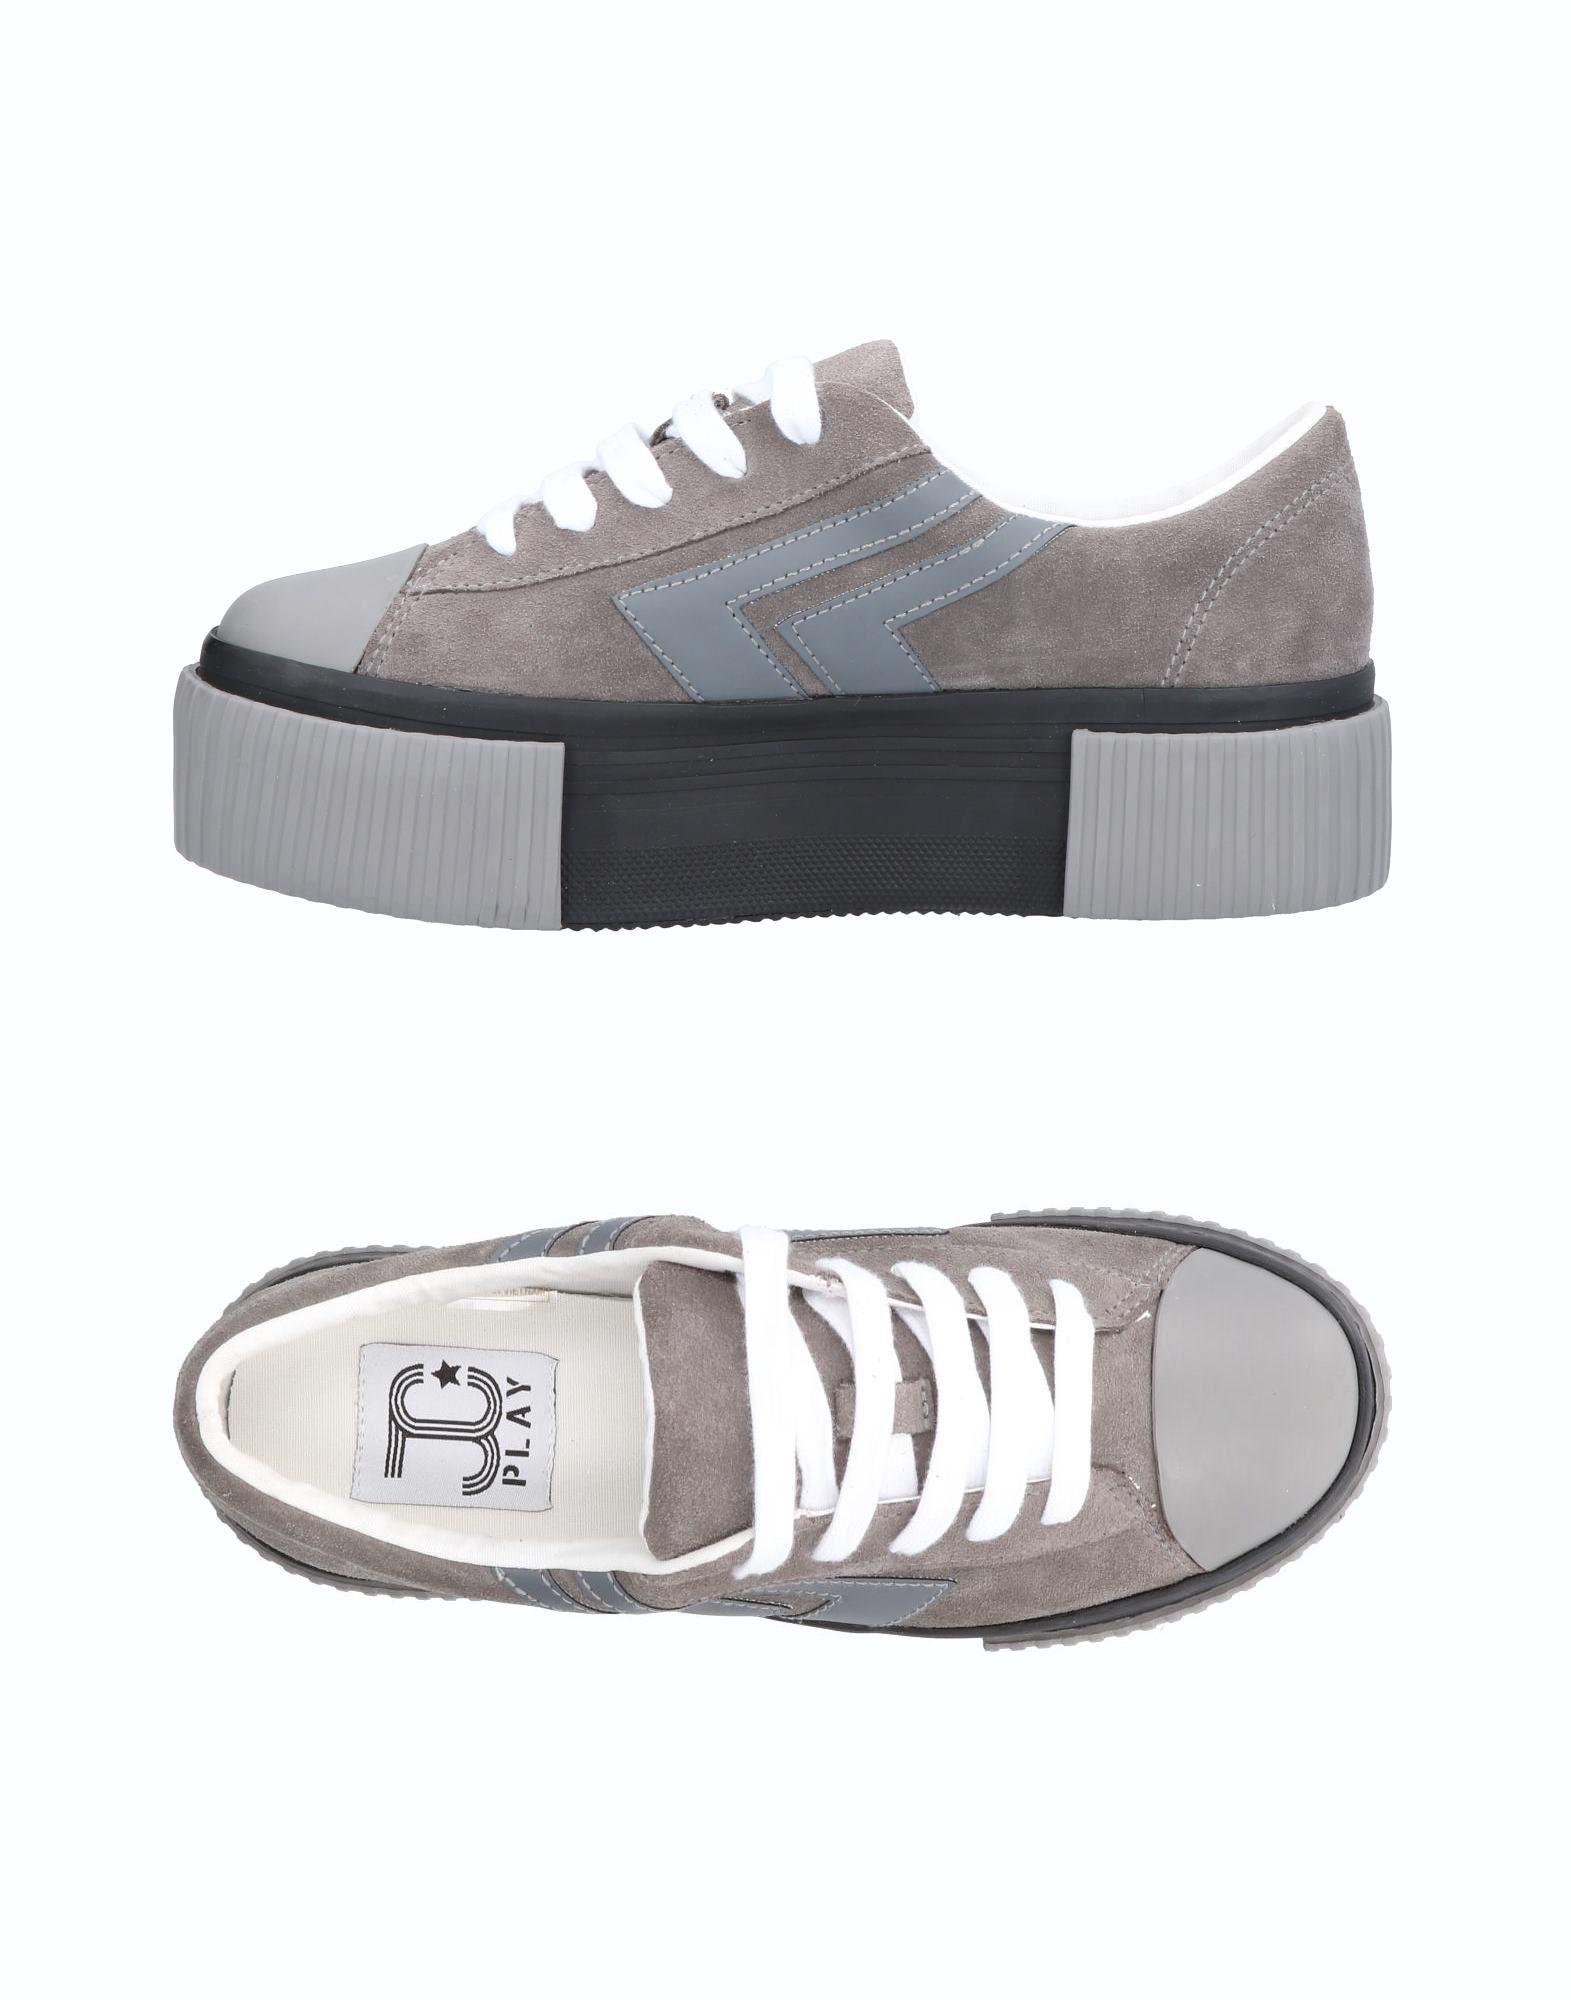 FOOTWEAR - Low-tops & sneakers Jeffrey Campbell Really Clearance Pay With Paypal Amazon Original For Sale Clearance Pay With Visa SqozhyGZNV